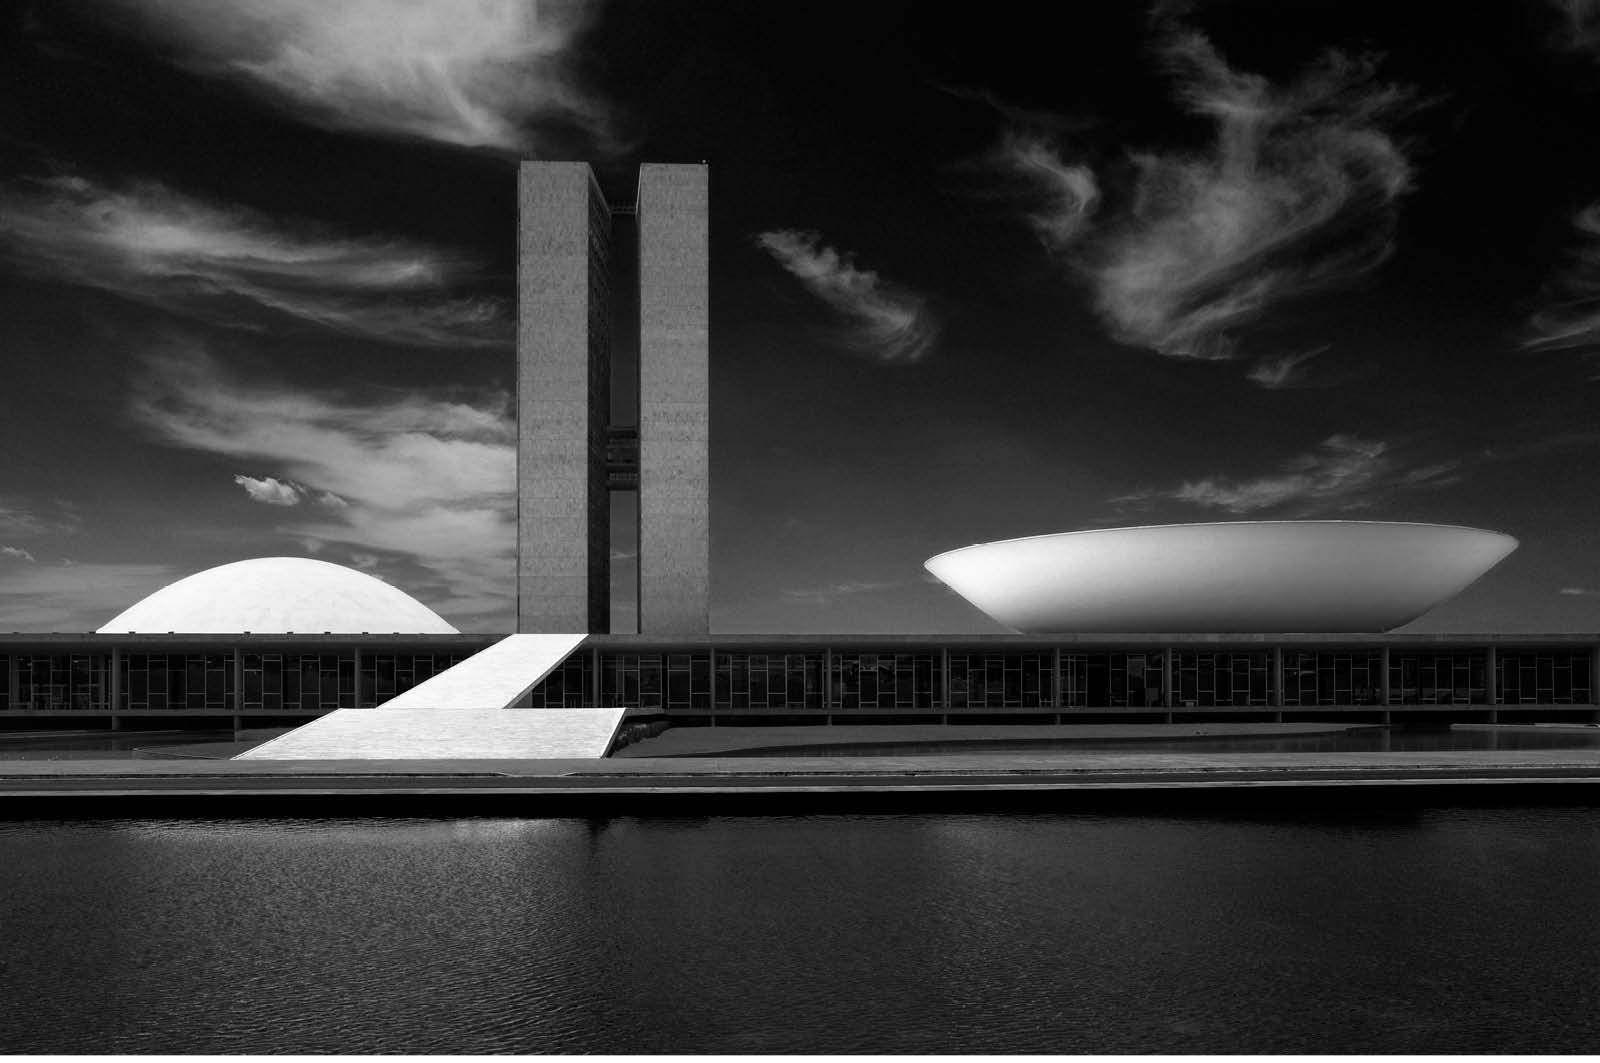 The National Congress of Brazil, 2011